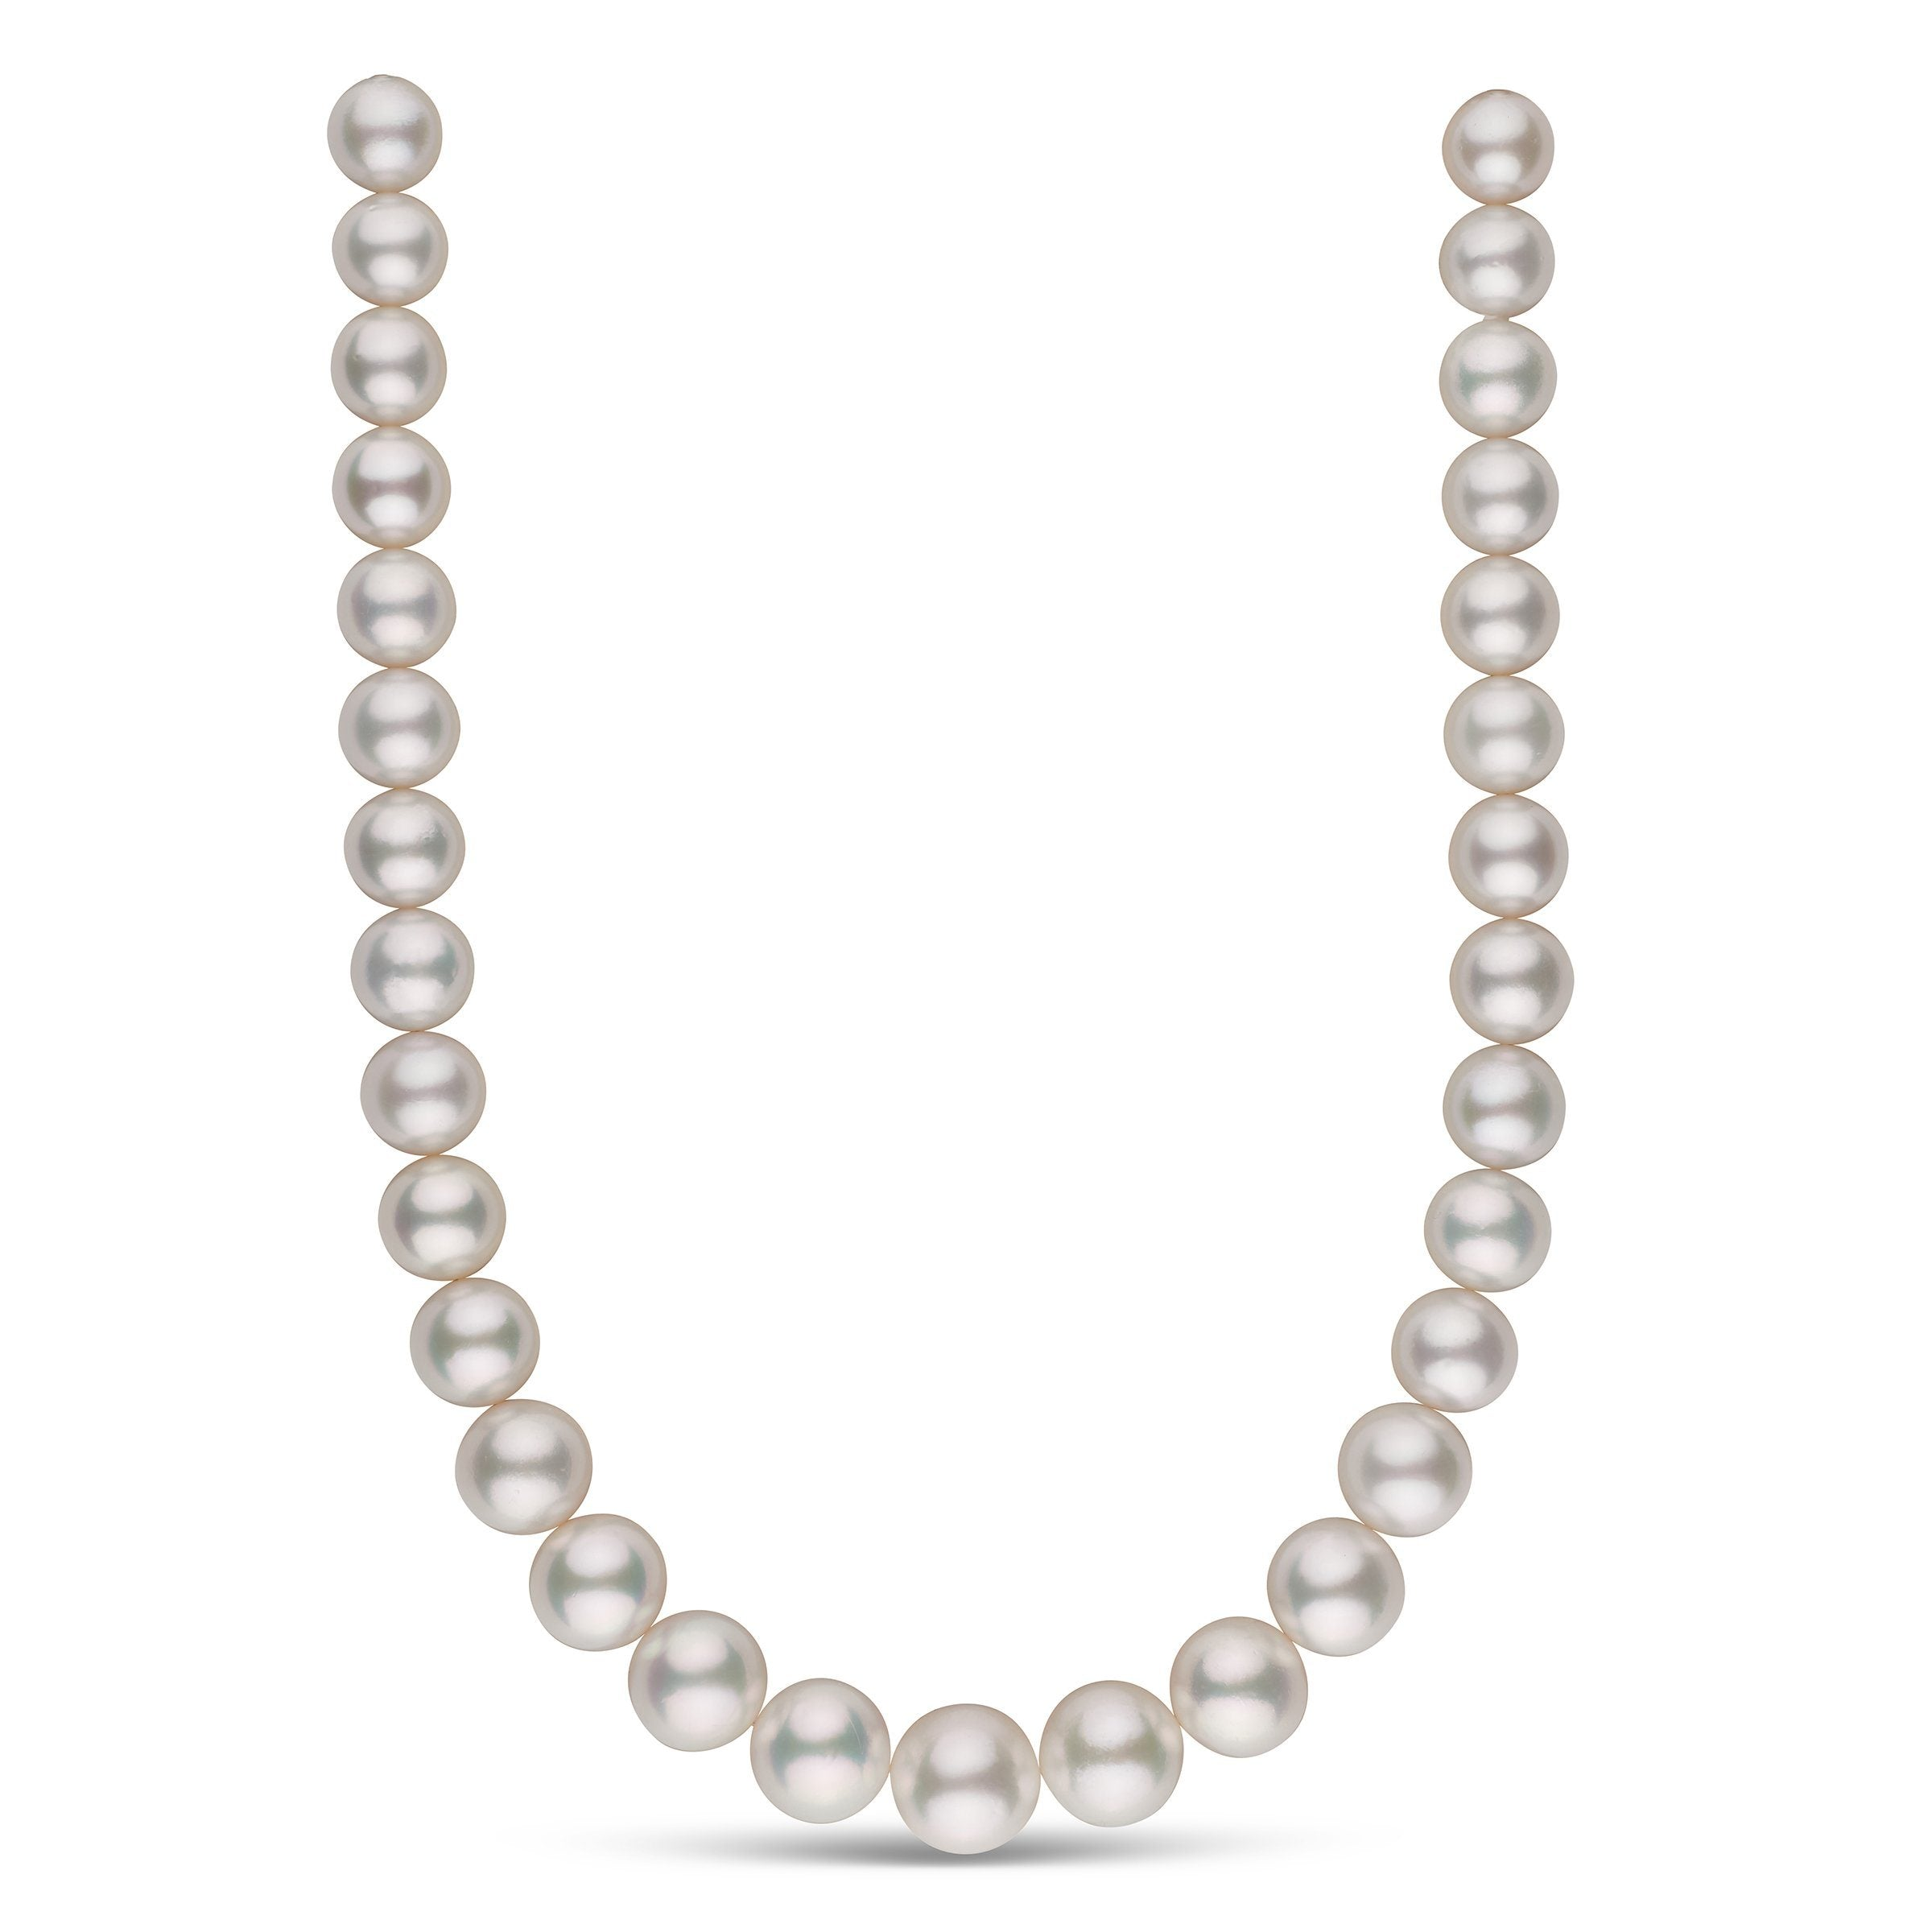 The Crescendo White South Sea Pearl Necklace